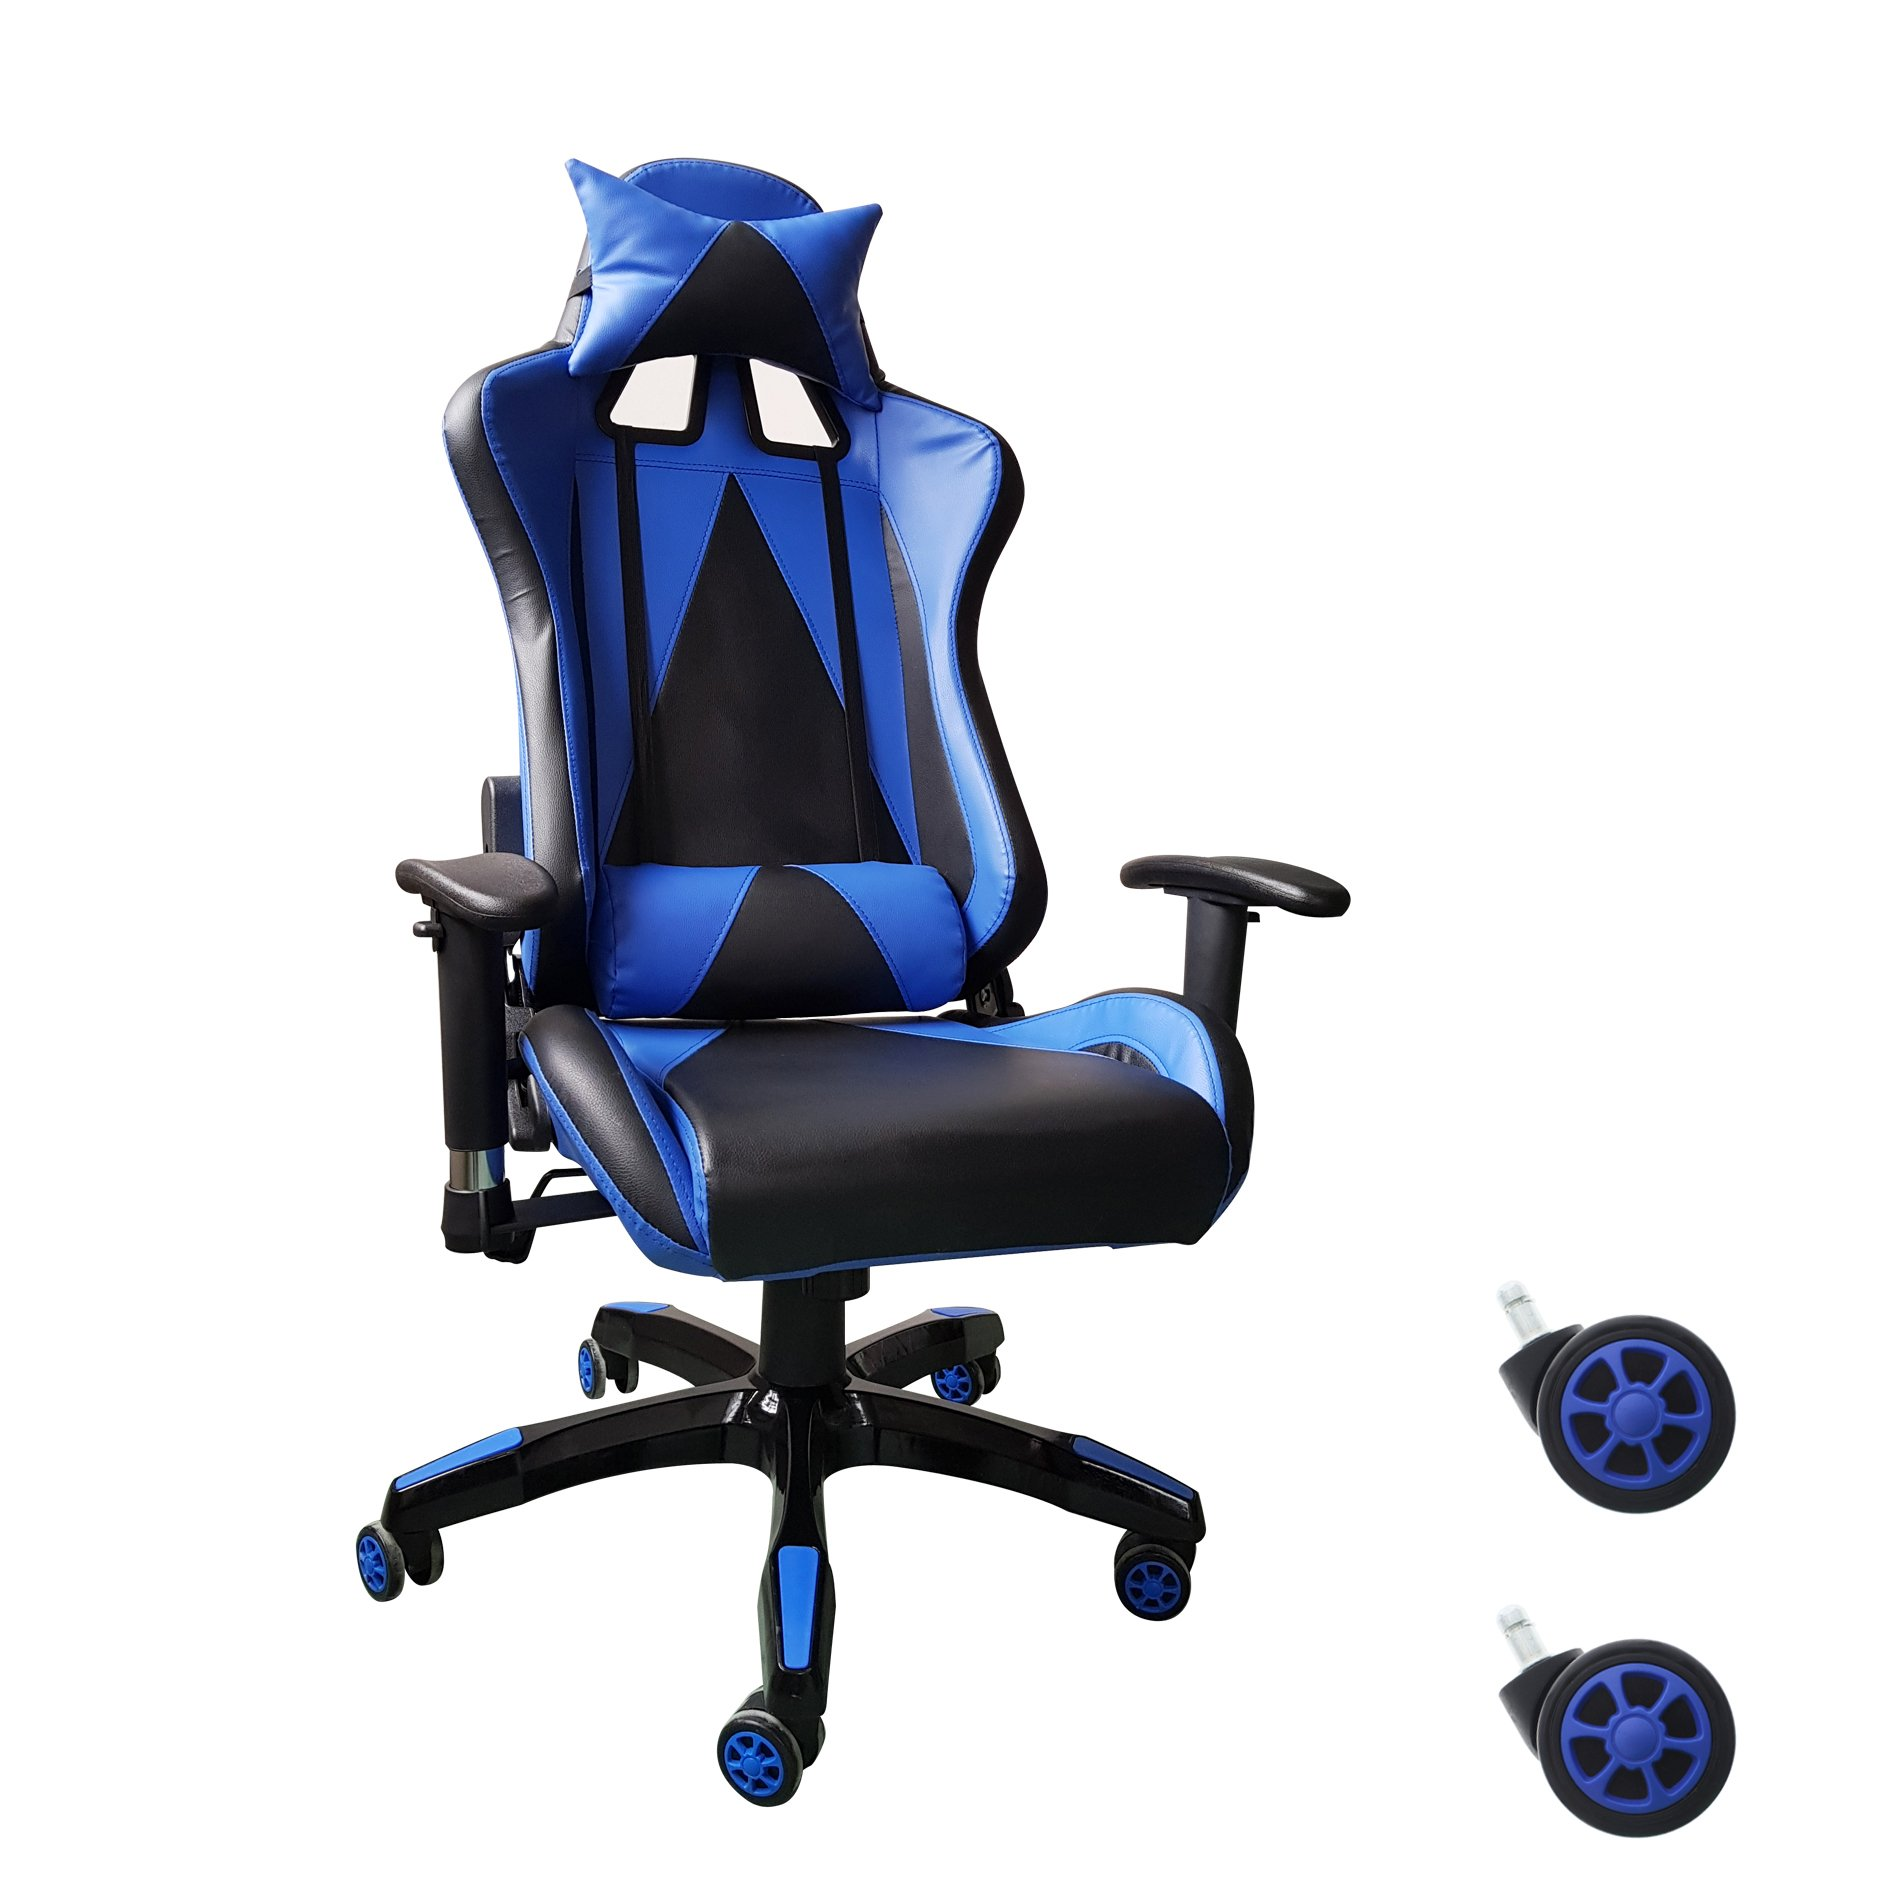 Video Gaming Chair Executive Swivel Racing Style High-Back Office Chair Lumbar Support Ergonomic With Headrest - Blue